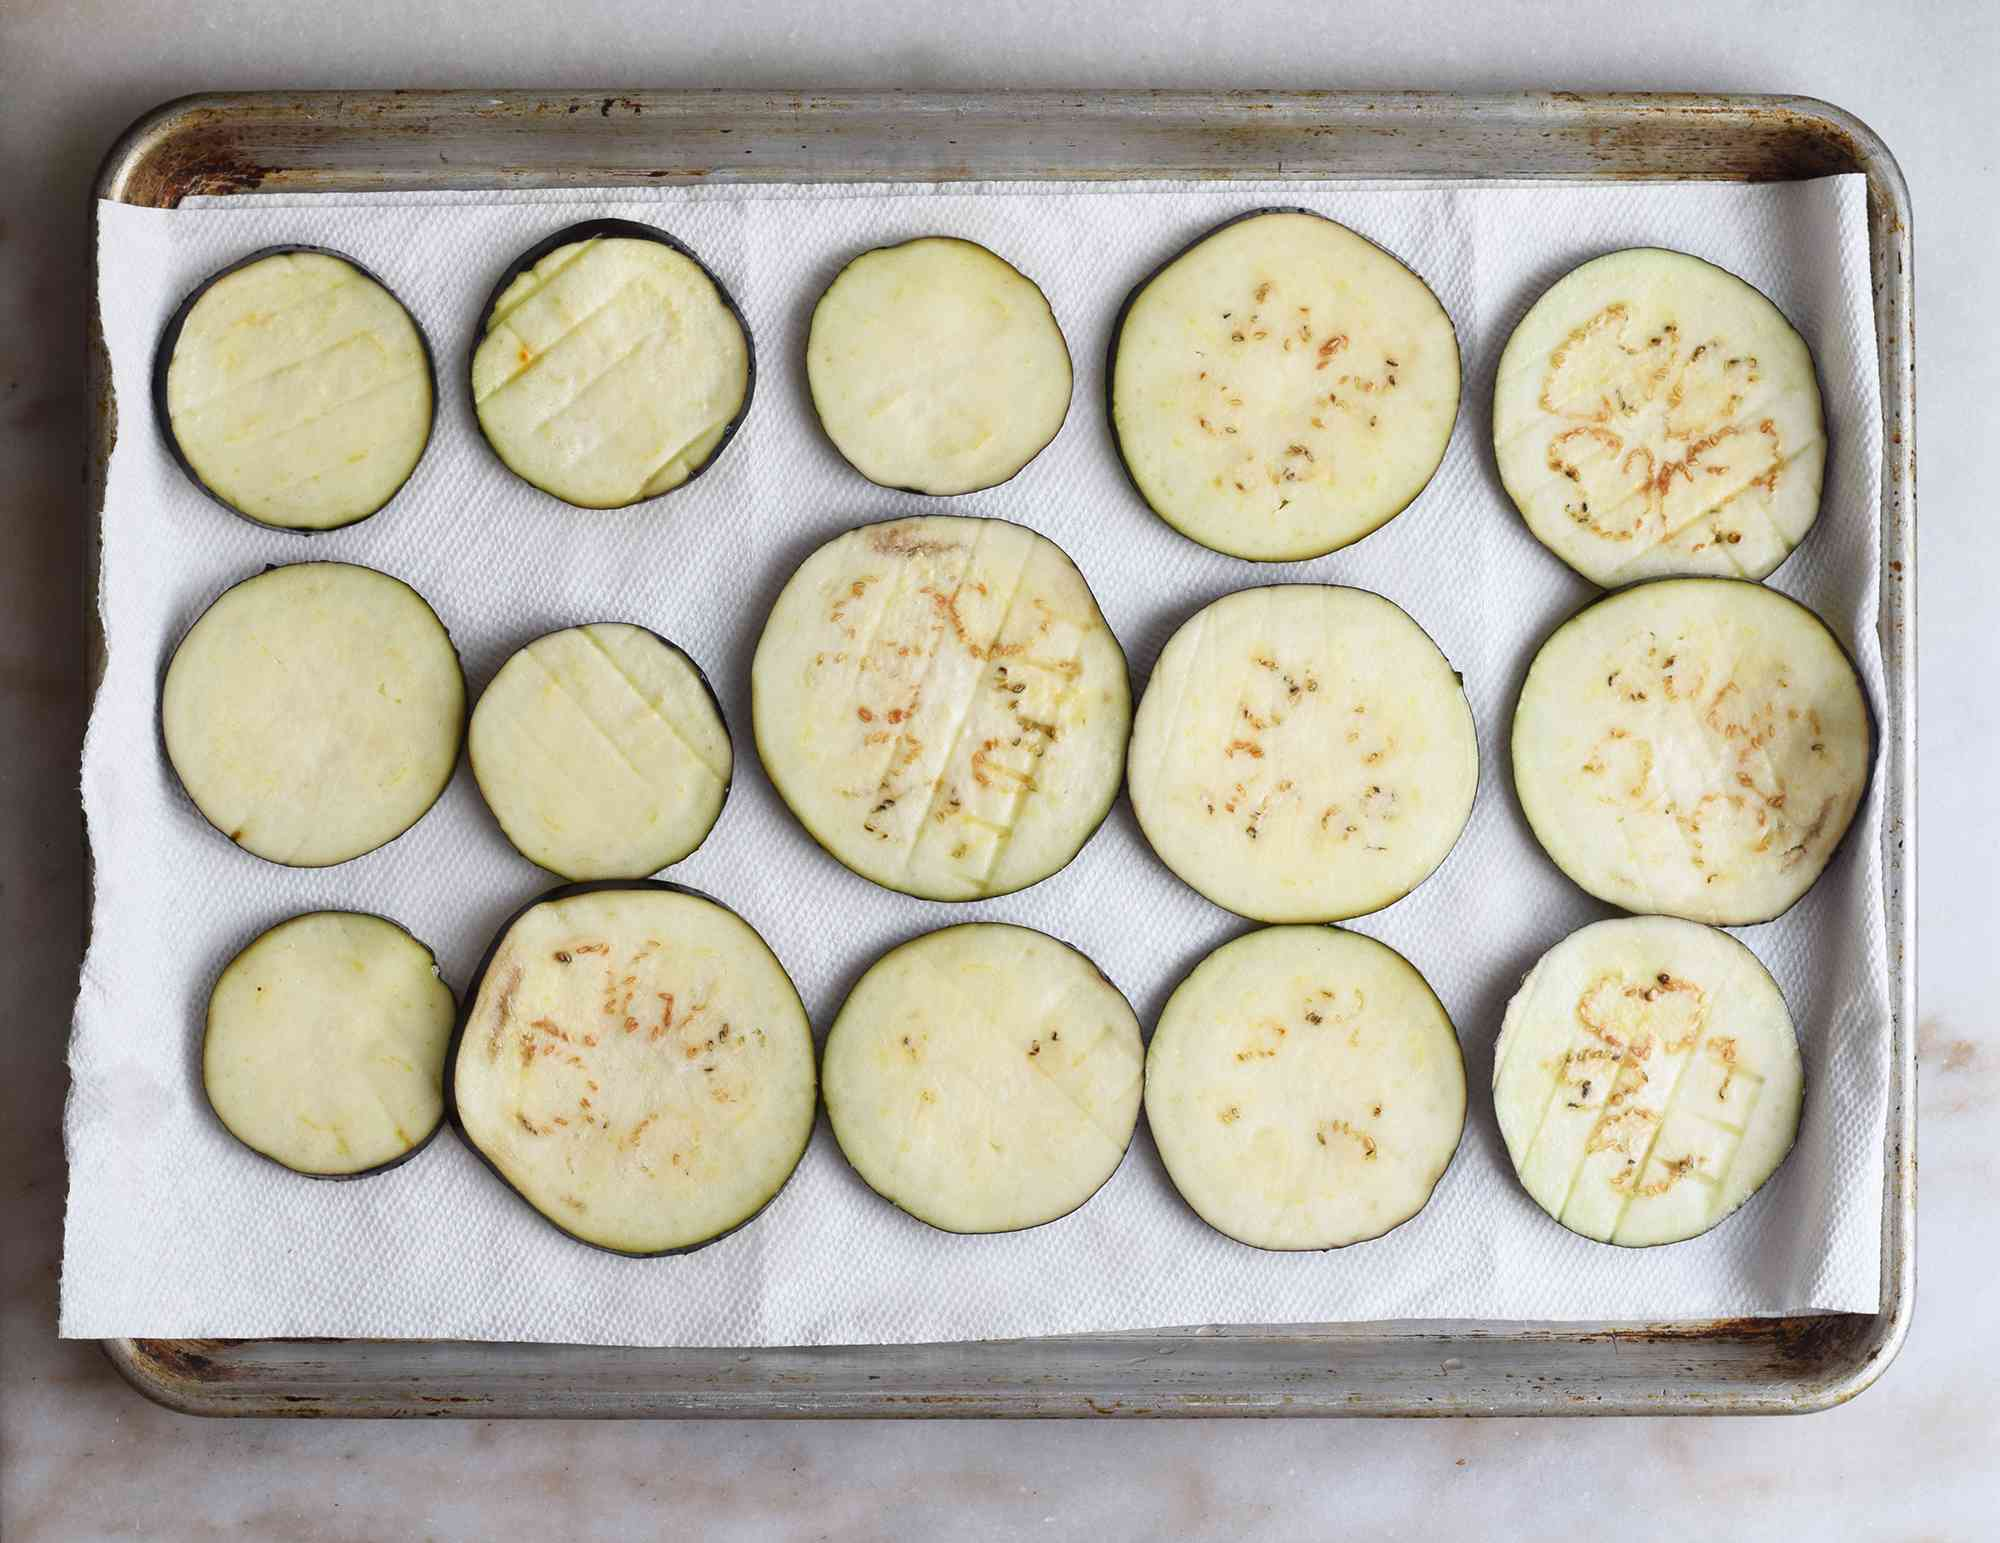 eggplant slices drying on a baking sheet